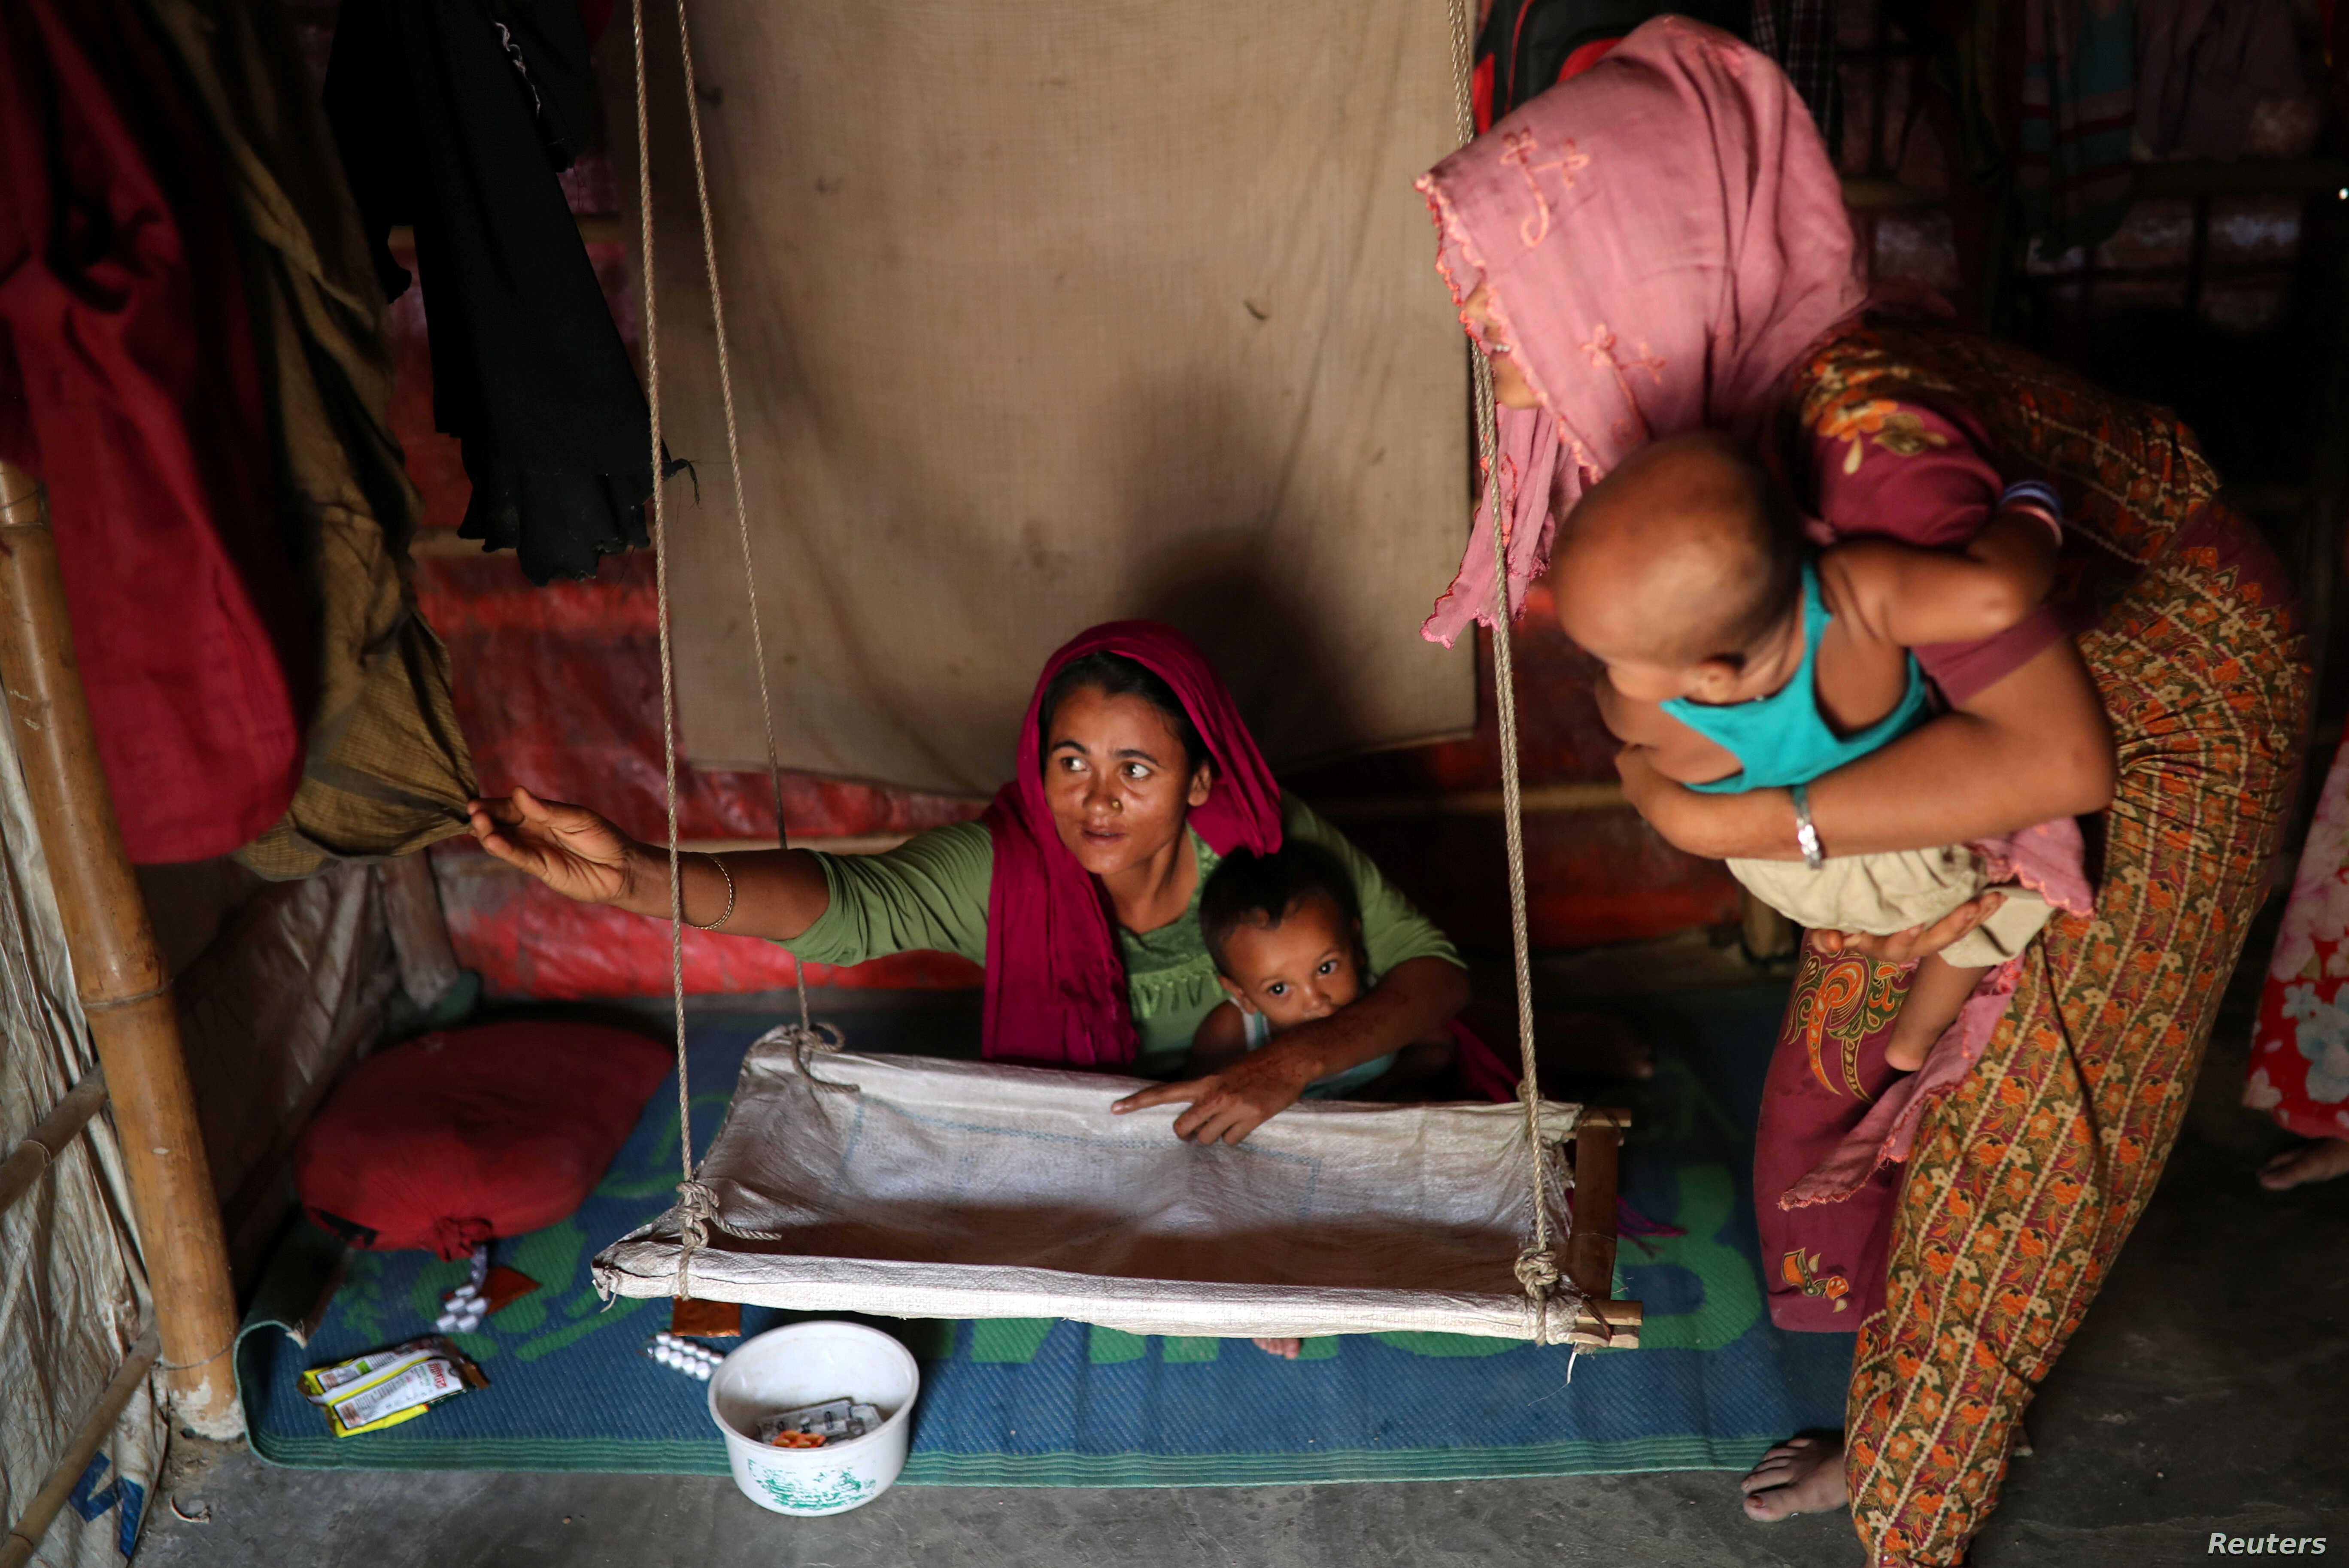 Rohingya refugee women arrange a cradle for child in their makeshift tent in the Balukhali refugee camp in Cox's Bazar, Bangladesh, Aug. 23, 2018.